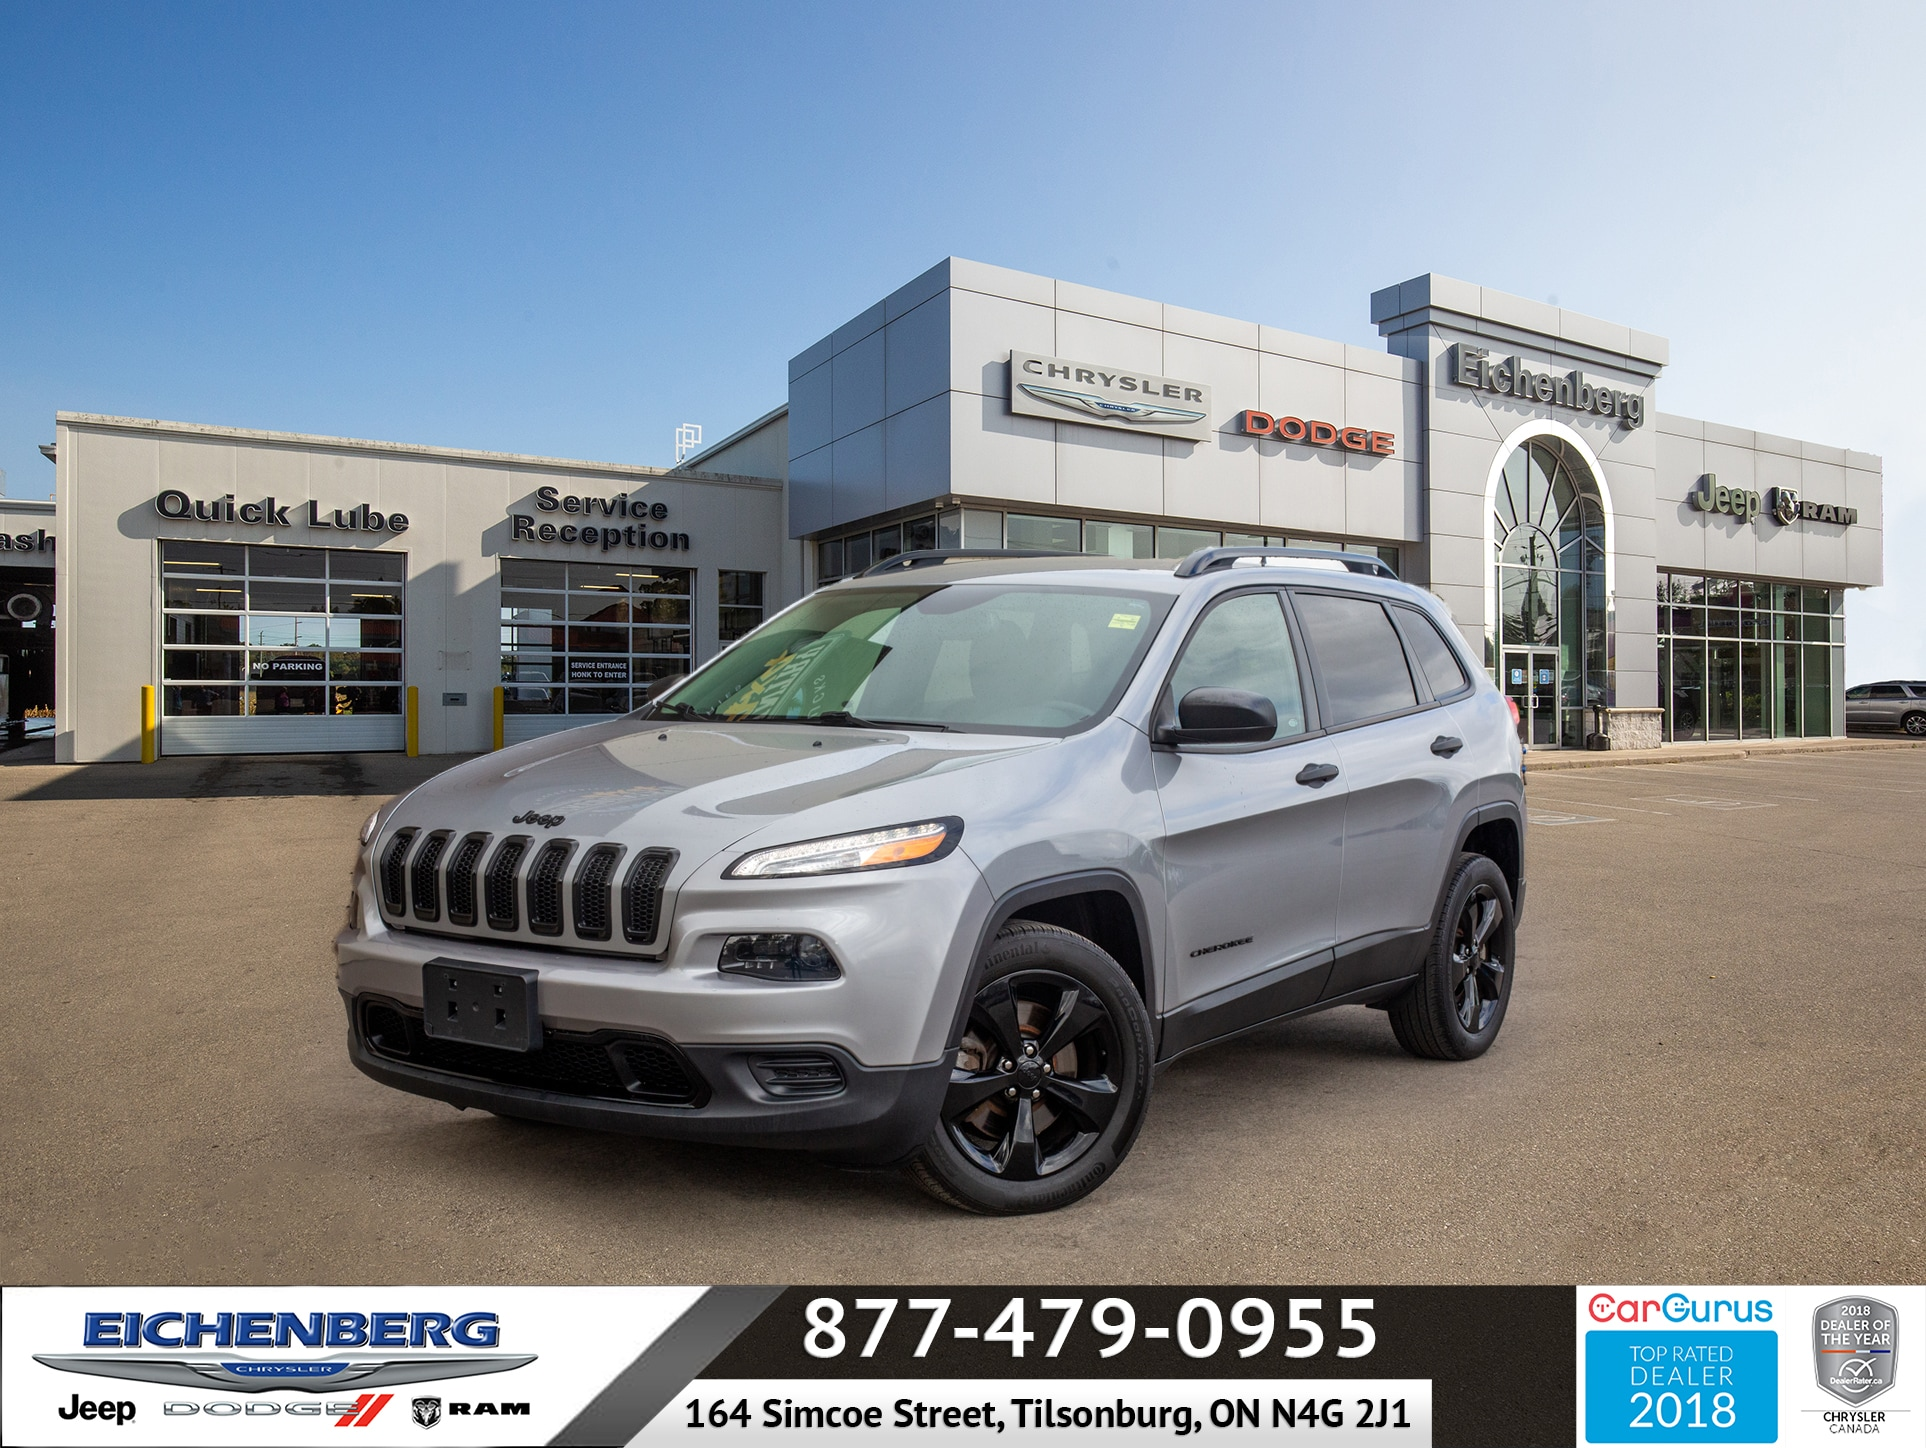 used 2016 Jeep Cherokee car, priced at $18,999